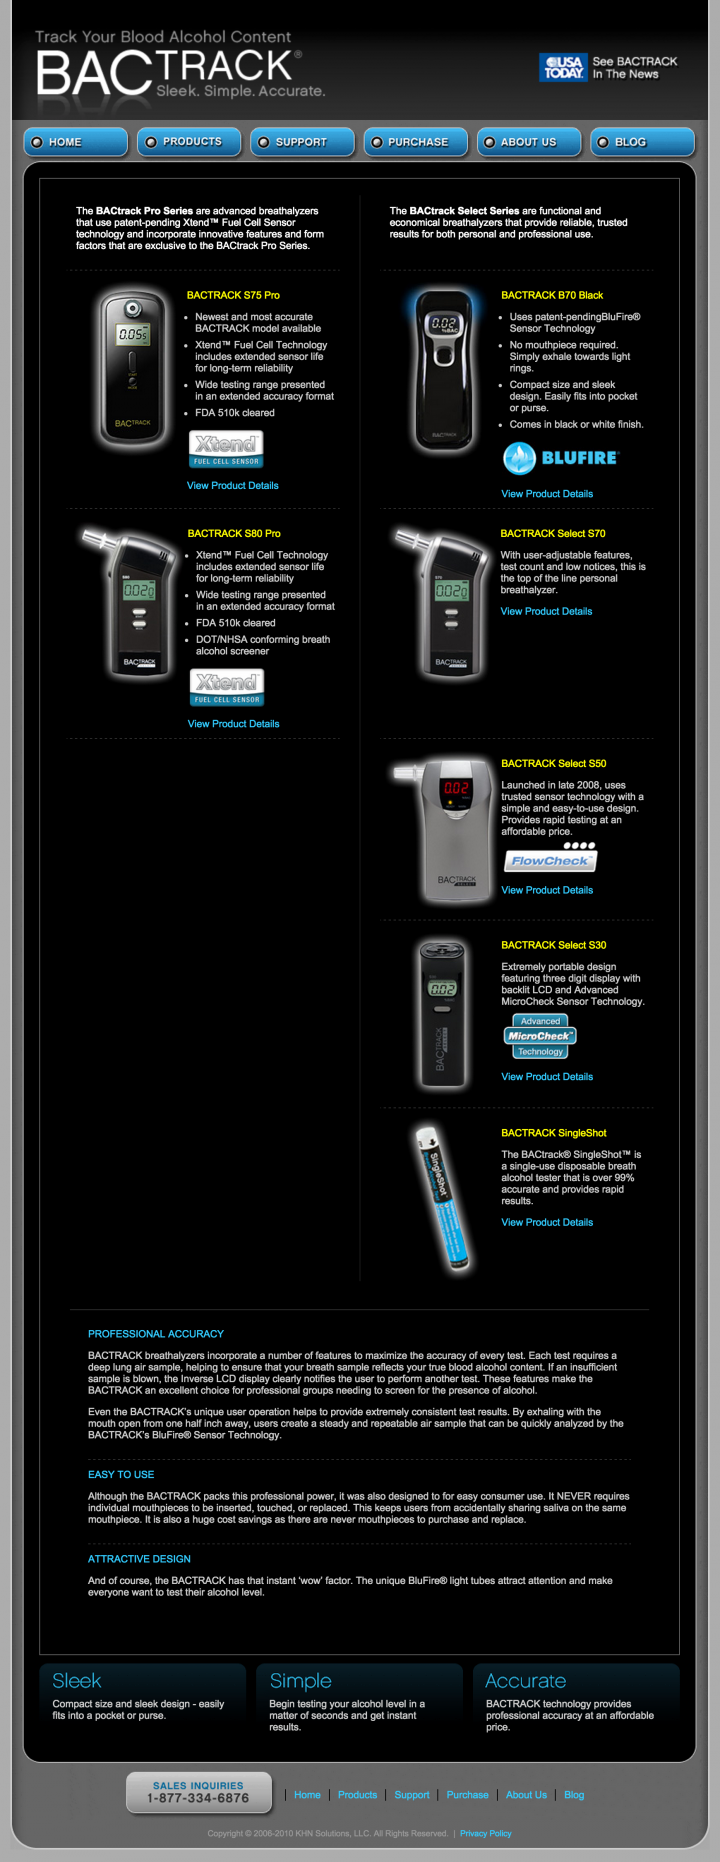 BACtrack Breathalyzers Products Page